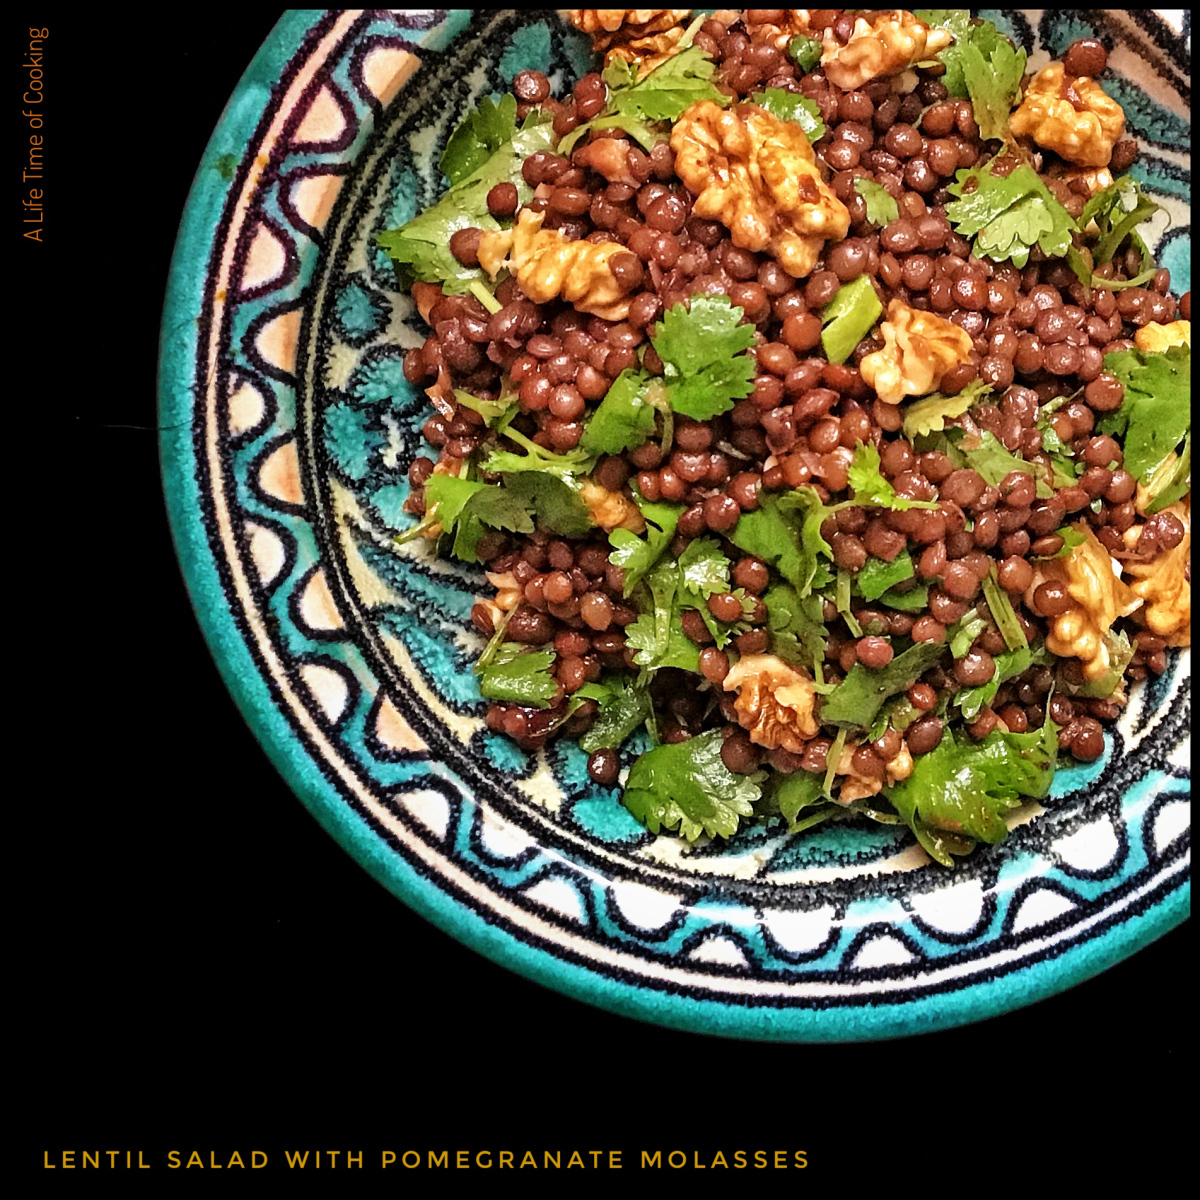 Black or Green Lentil Salad with Pomegranate Molasses